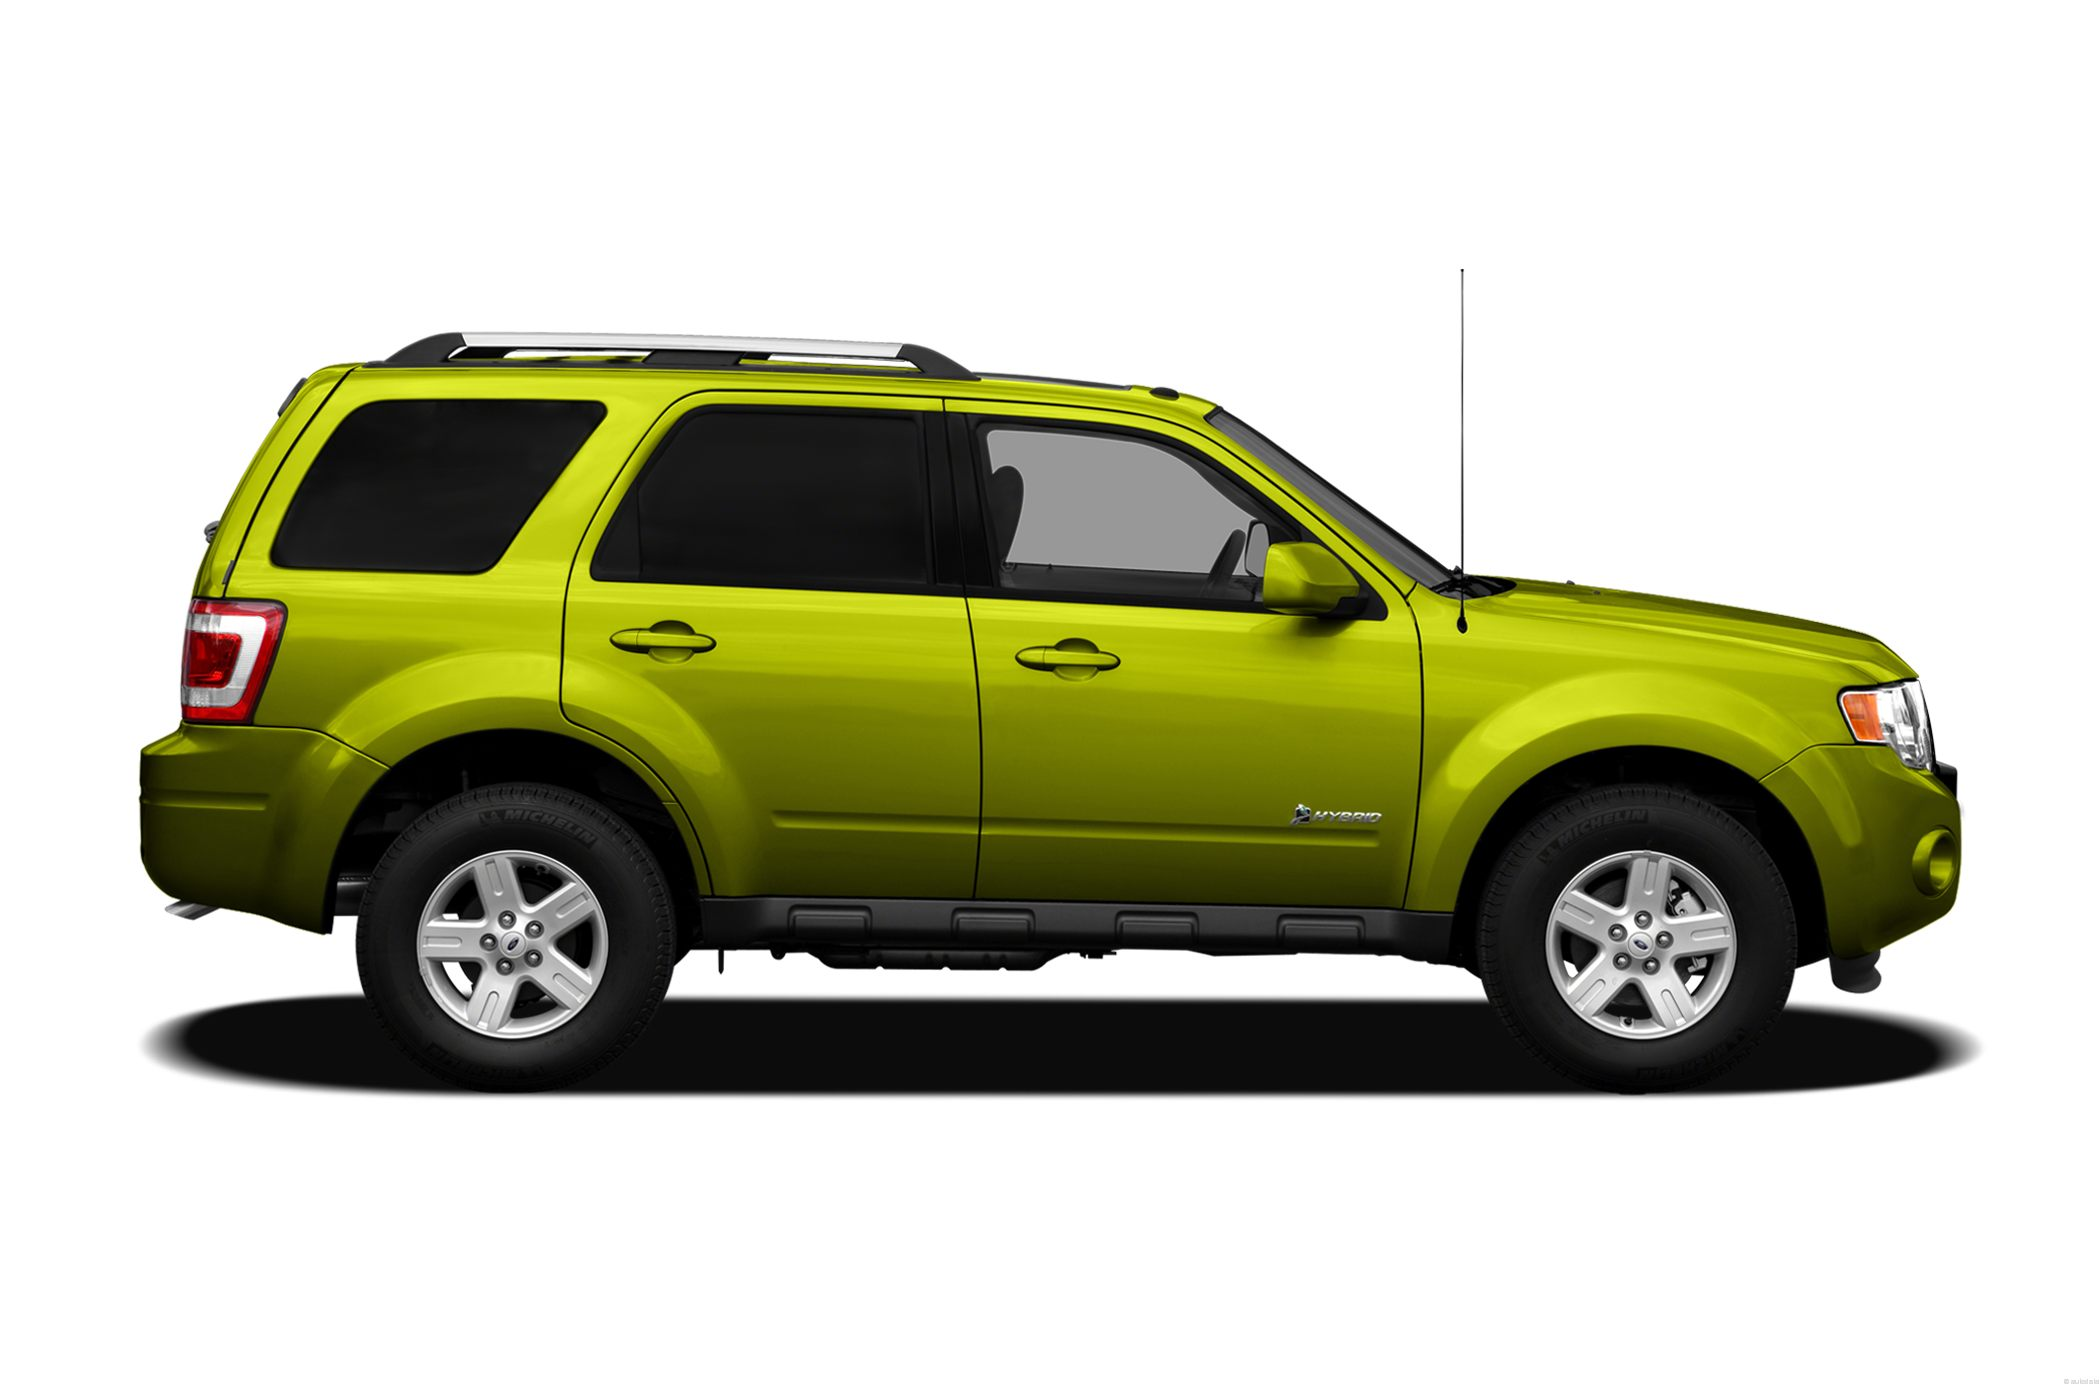 Ford Escape Hybrid SUV Base 4dr Front wheel Drive Photo Free Download Image